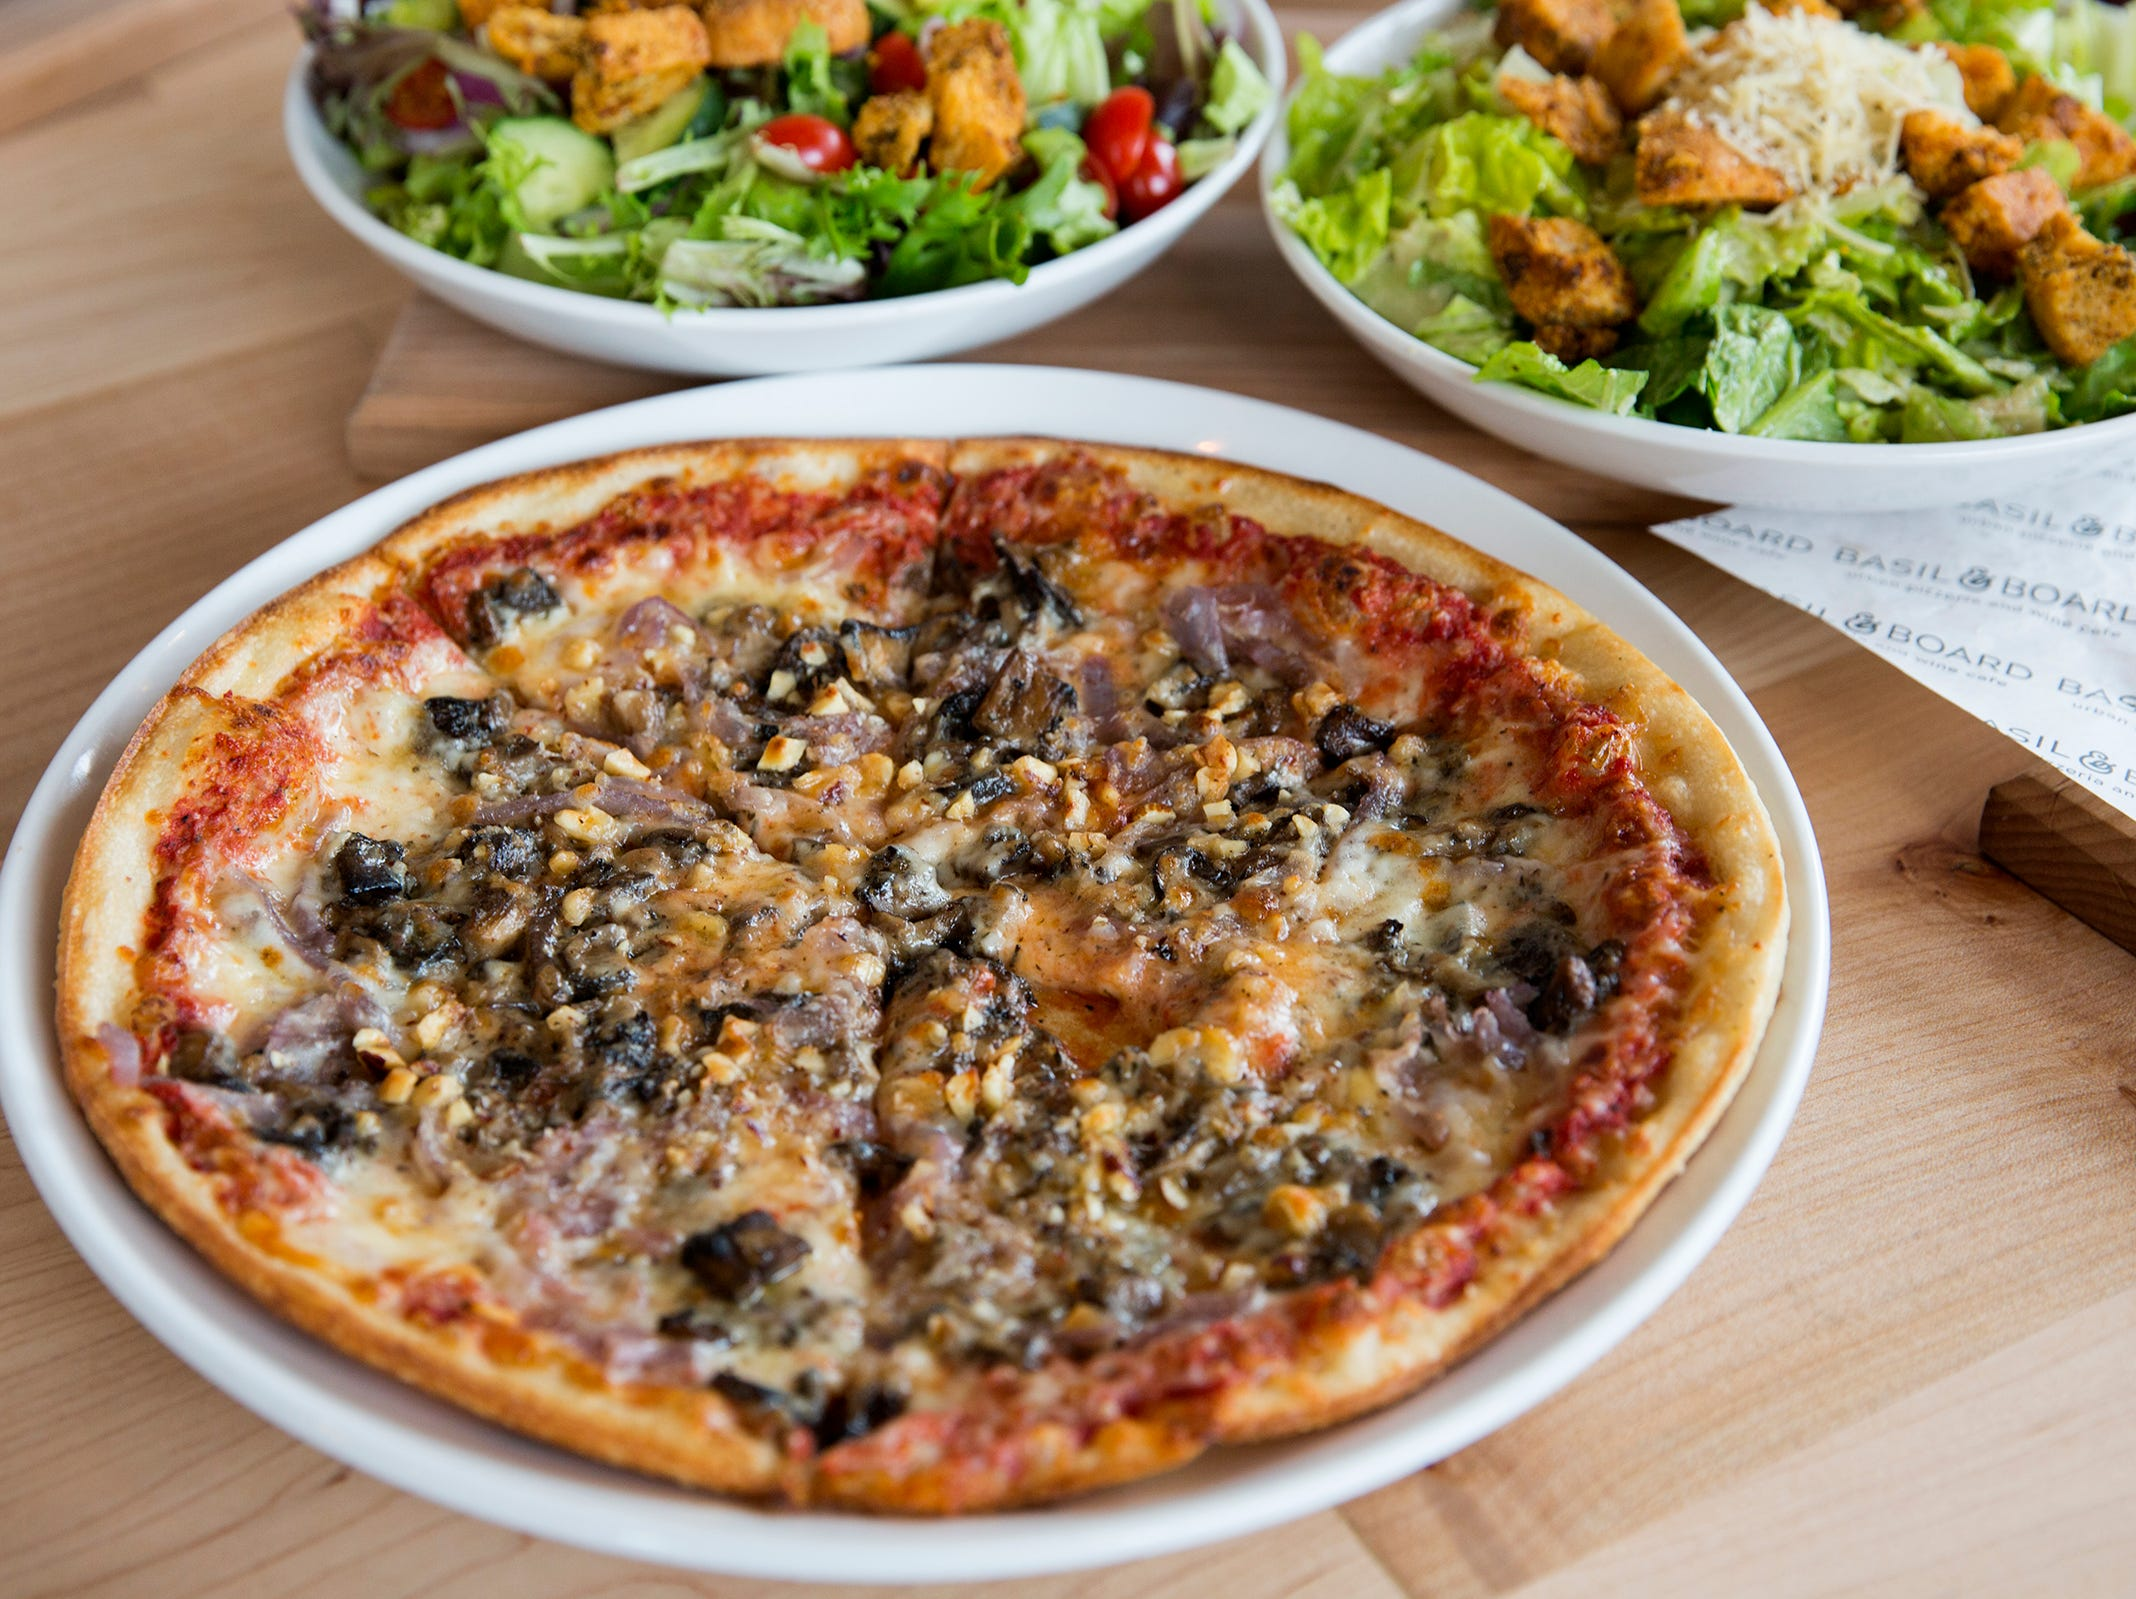 The Pacific Crest Trail 10-inch pizza, with forest mushrooms, toasted hazelnuts, caramelized onion and honey, is pictured at Basil & Board in Salem on Tuesday, Feb. 26, 2019.